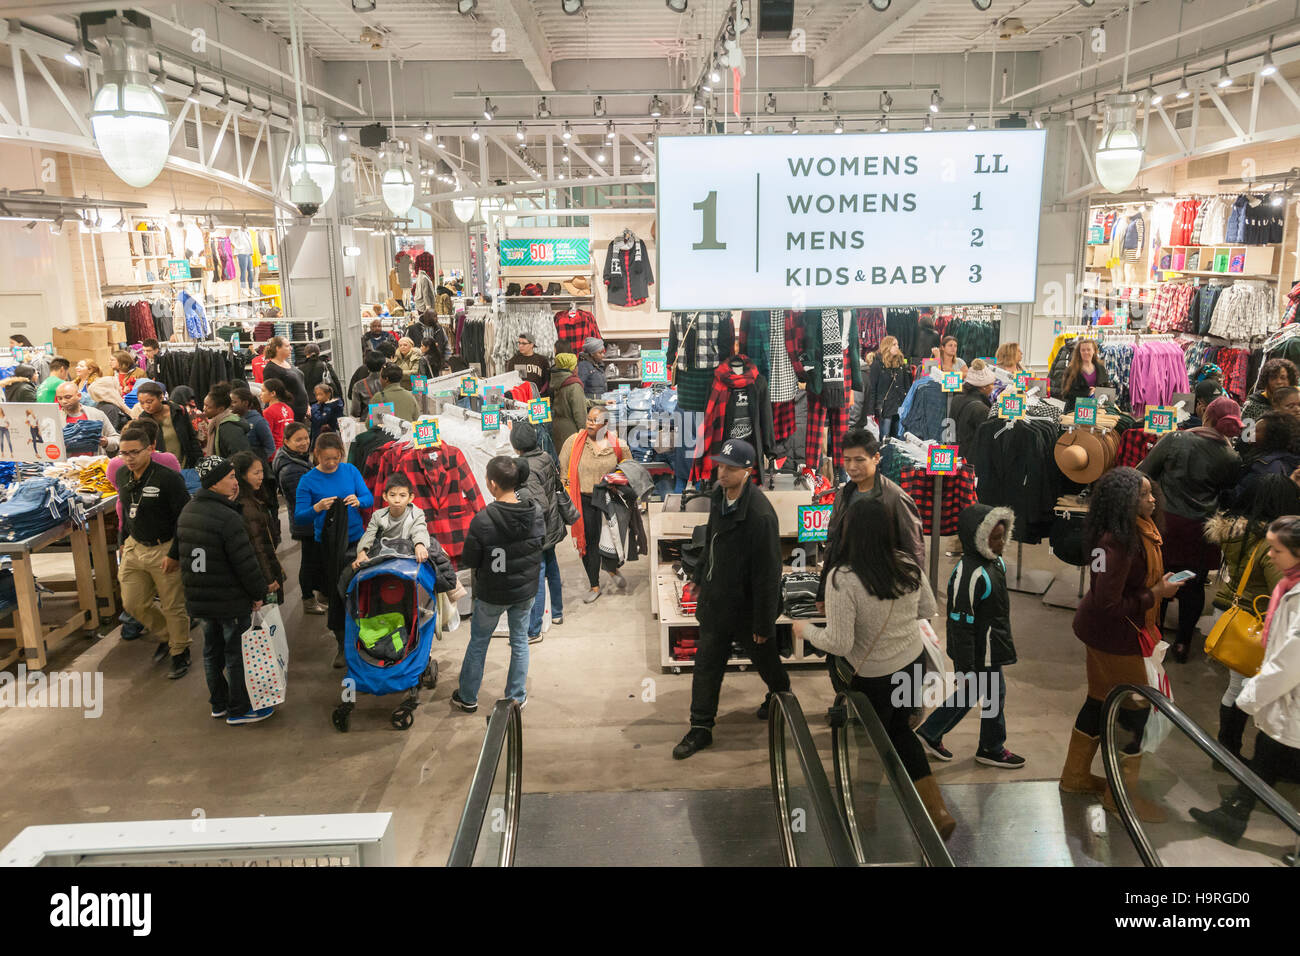 New York, USA. 25th November, 2016. Shoppers in Old Navy in Herald Square in New York looking for bargains on the - Stock Image